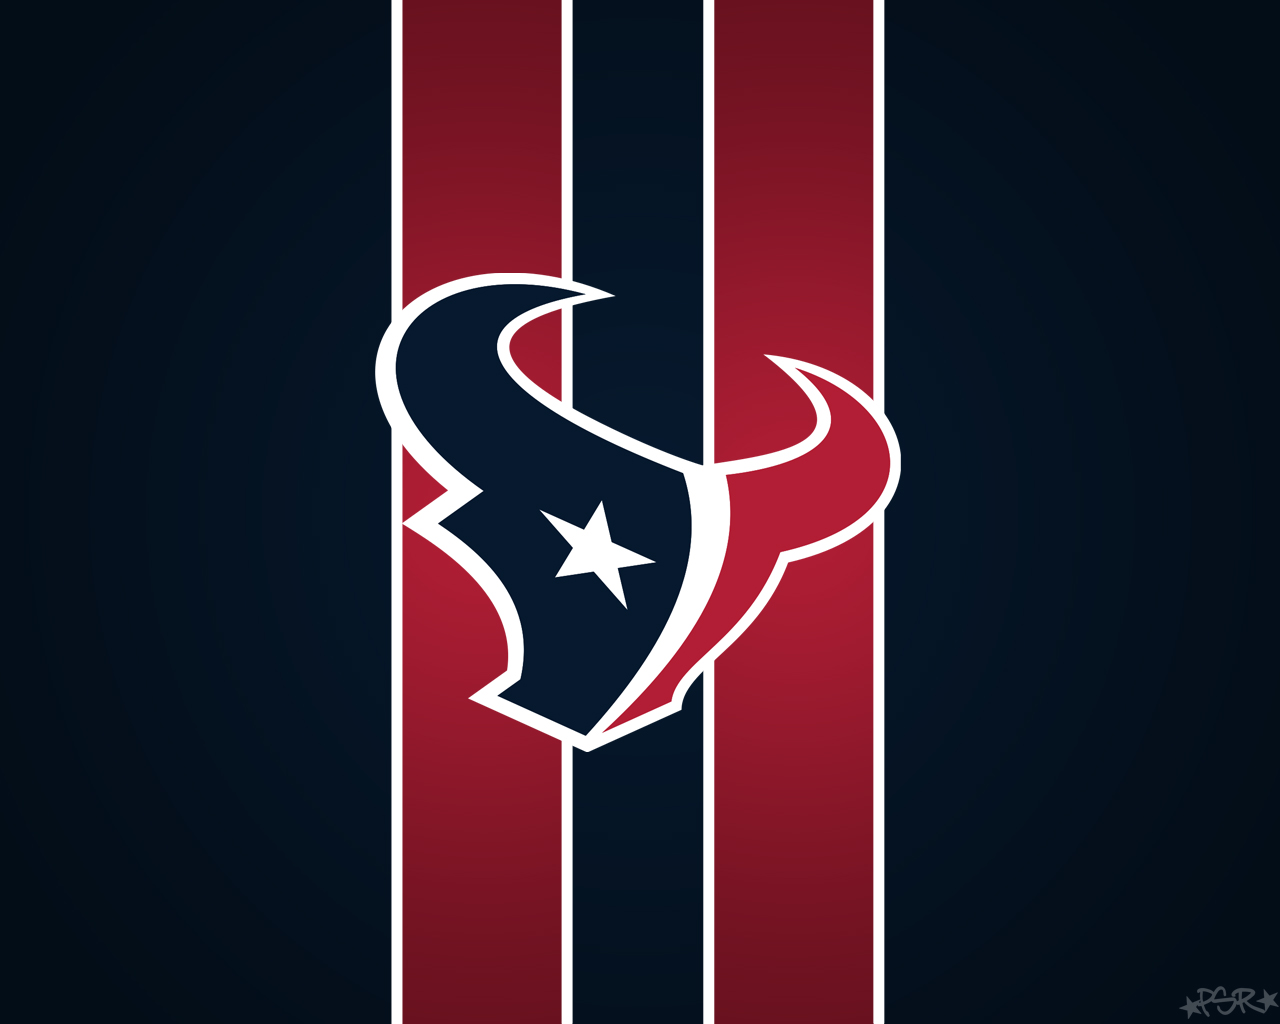 Houston Texans Computer Wallpapers Desktop Backgrounds 1280x1024 1280x1024